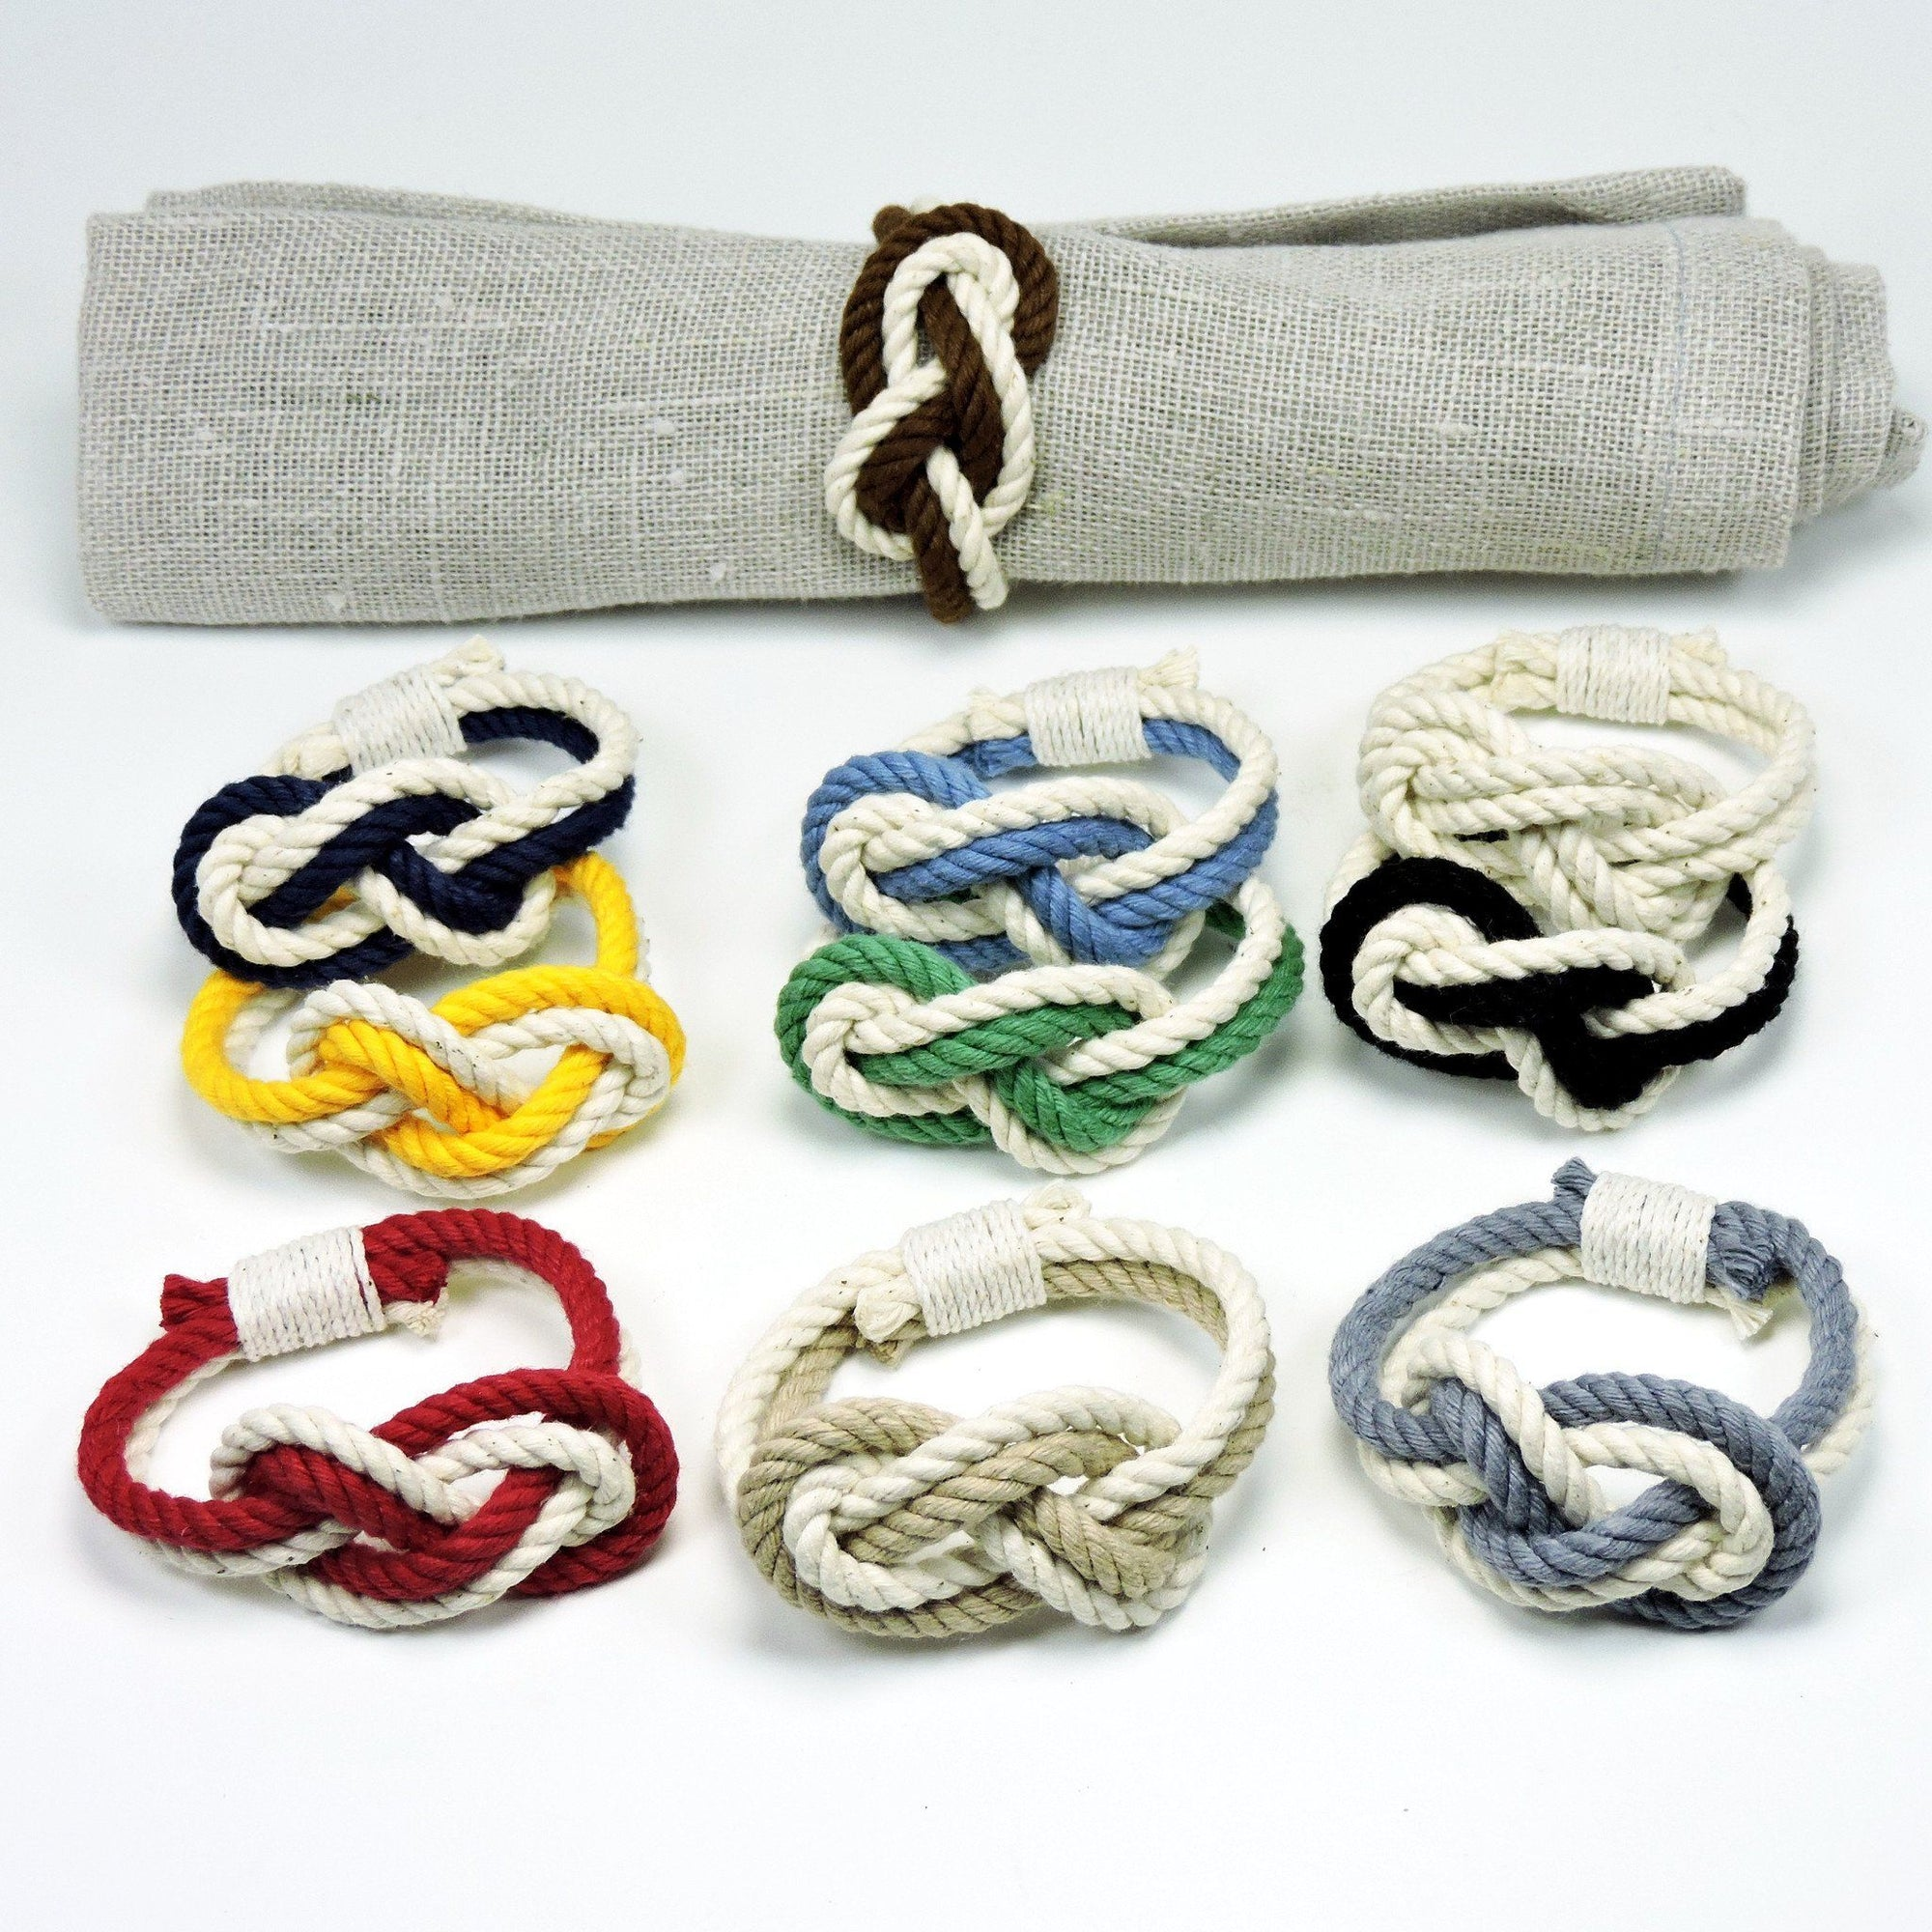 Nautical Figure Eight Infinity Knot Napkin Rings, Nautical Colors, Set of 4 Handmade sailor knot American Made in Mystic, CT $ 11.20